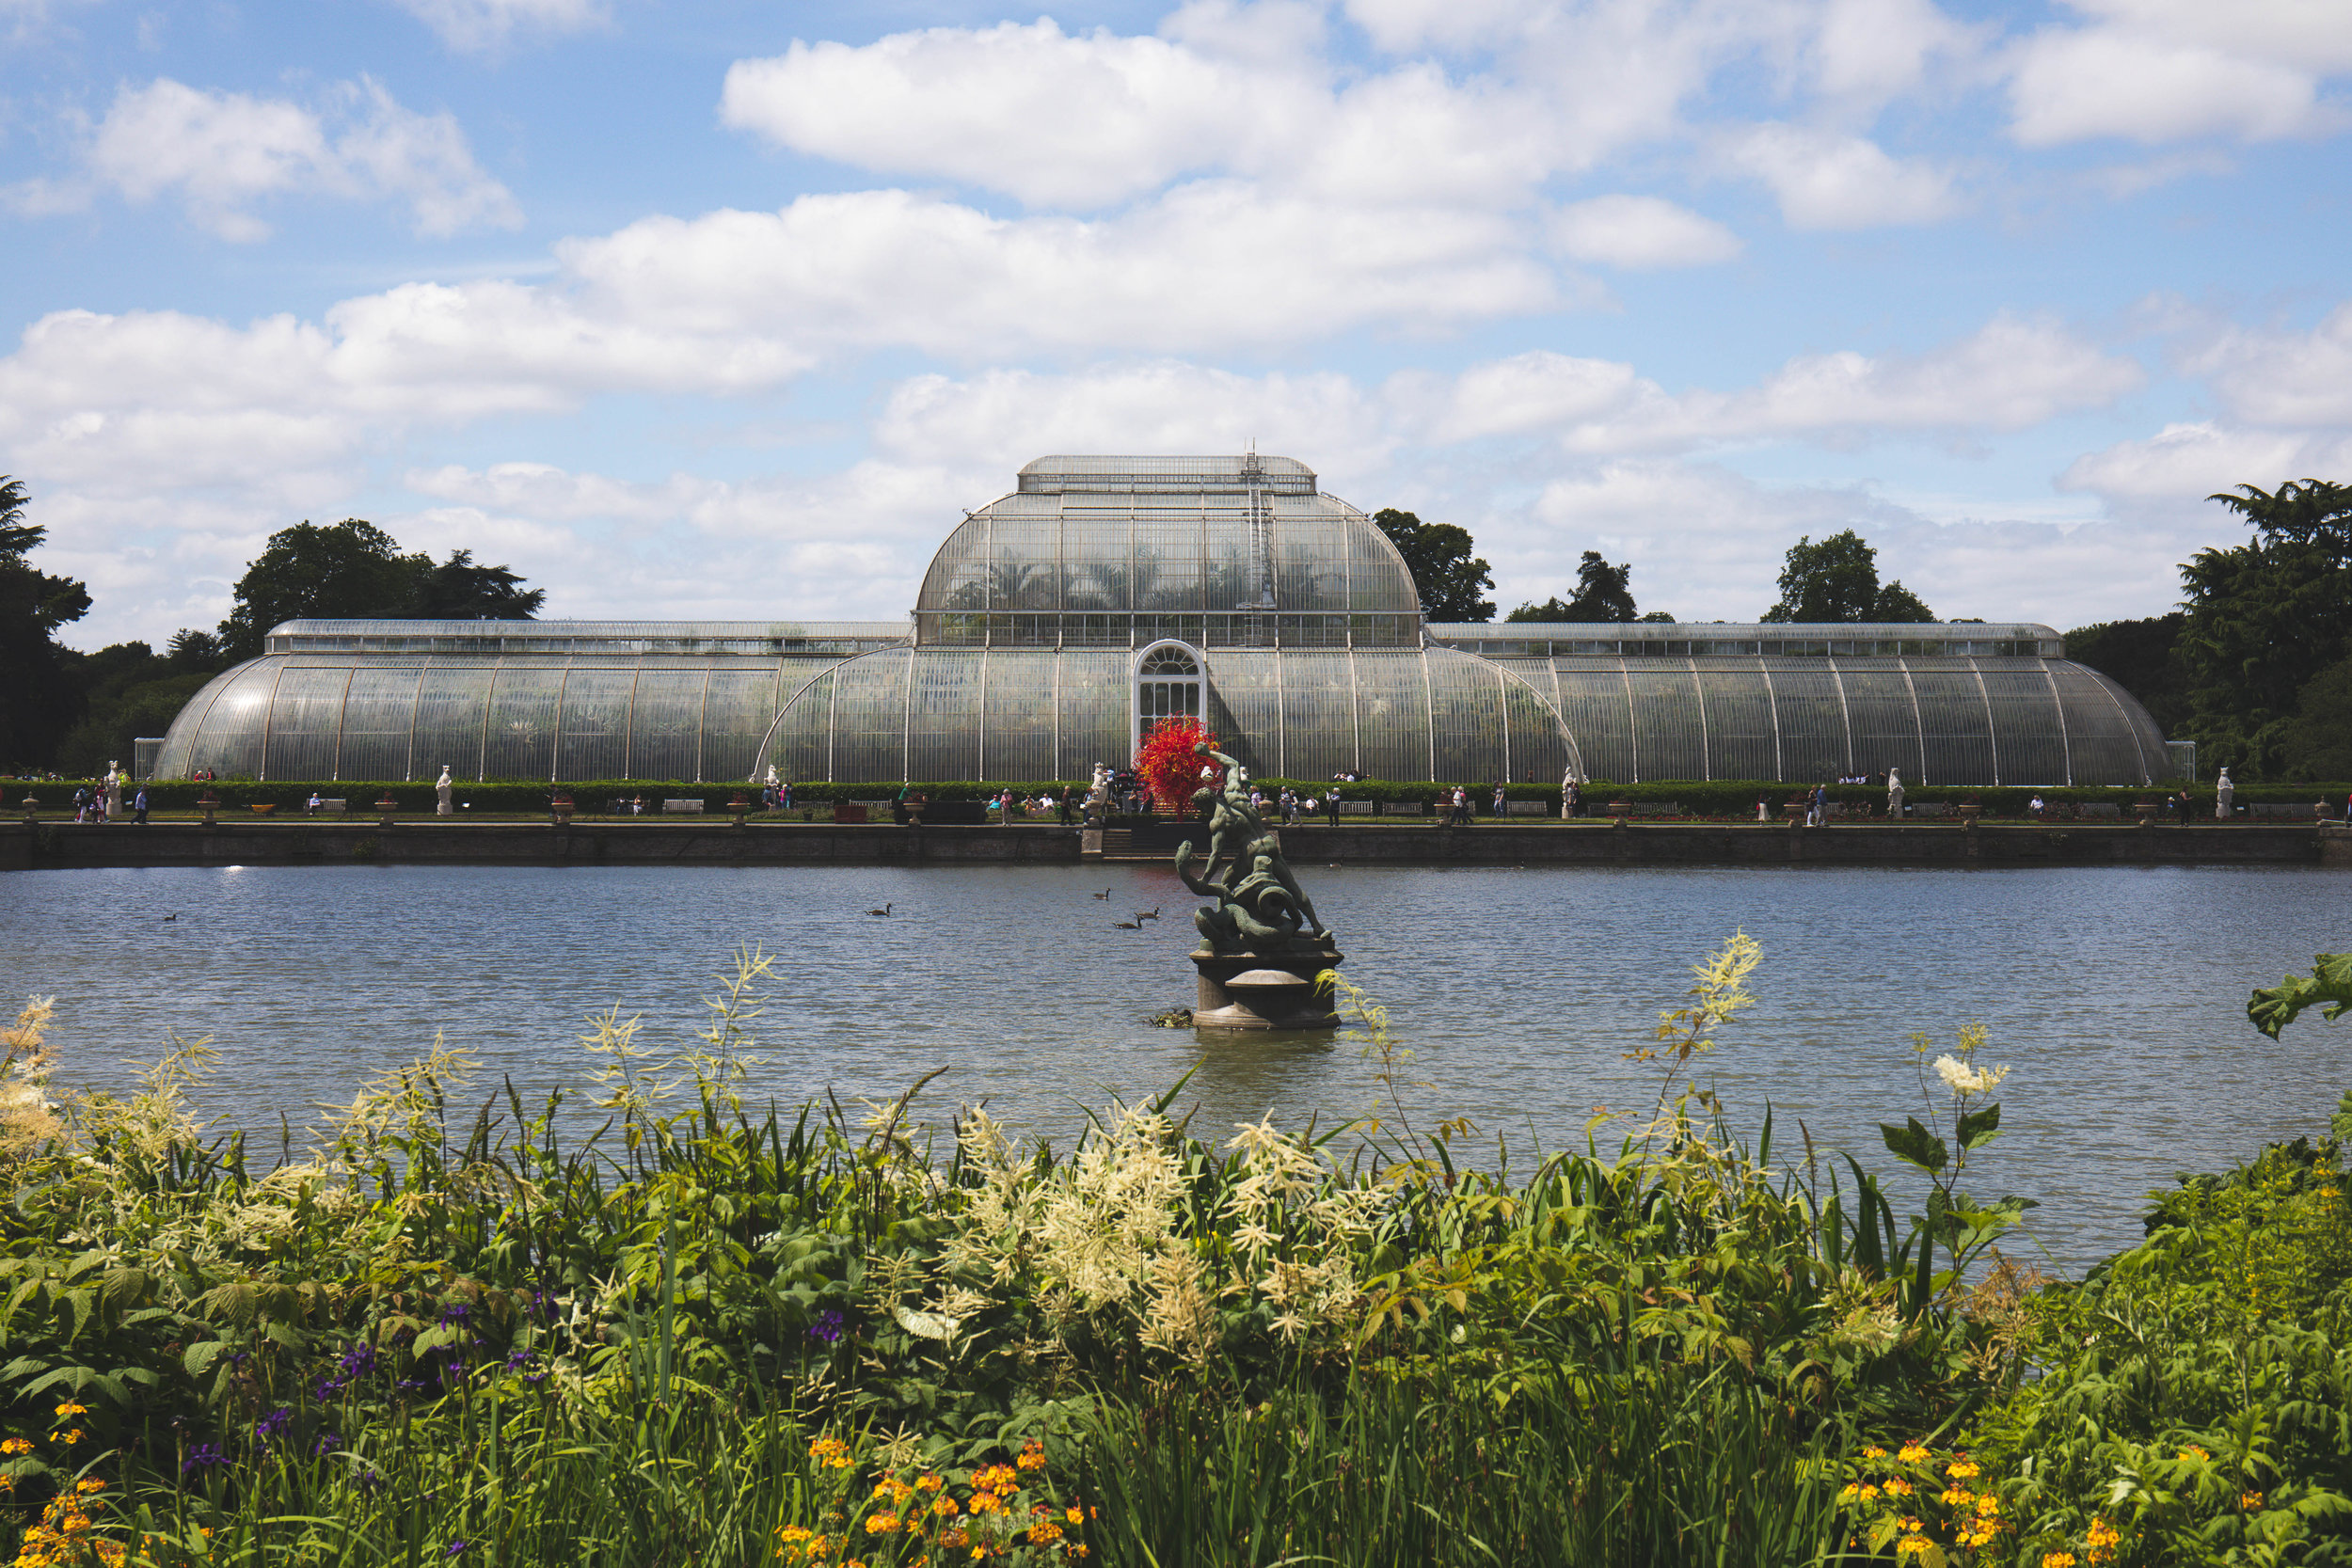 The Palm House -